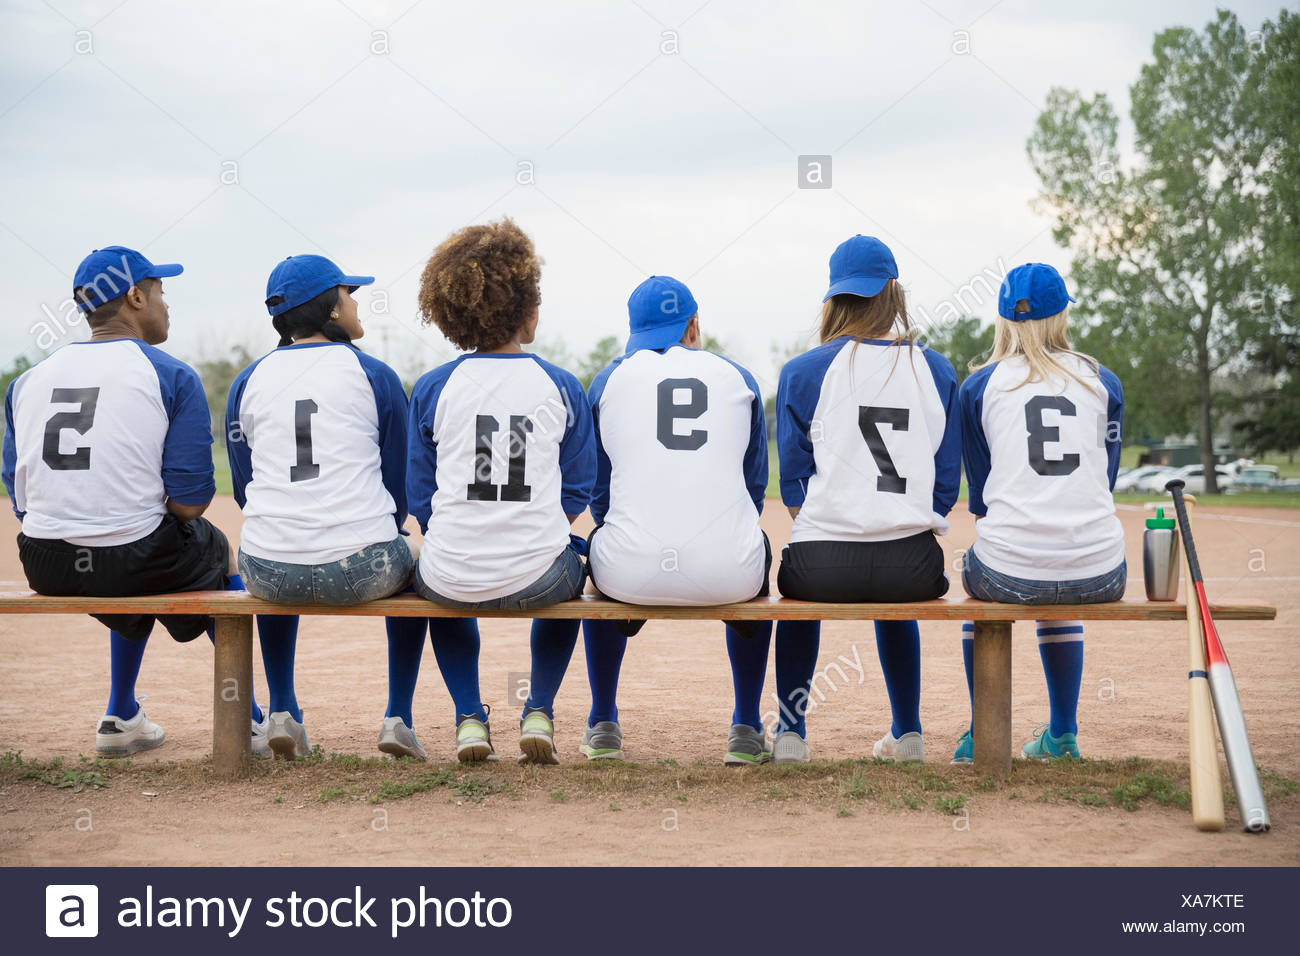 Baseball team sitting on bench in field - Stock Image